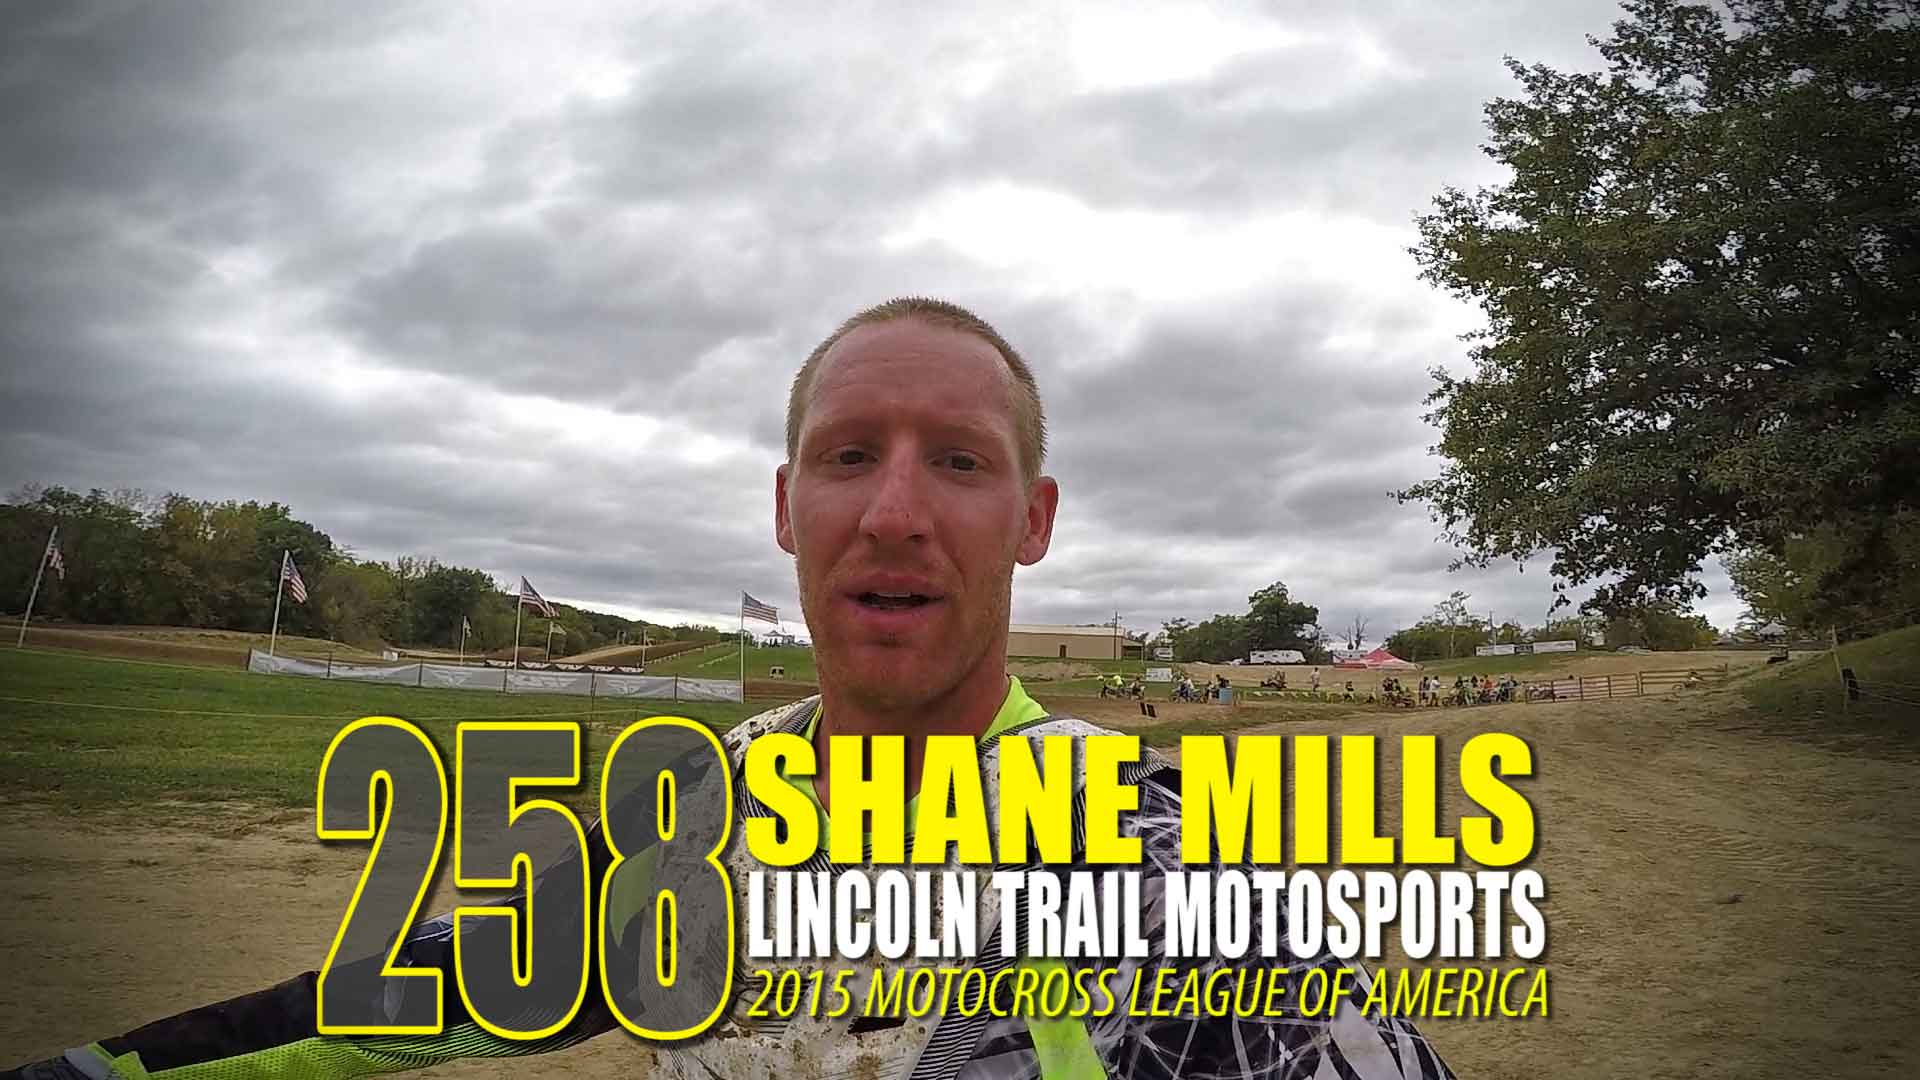 HELMET CAM: Shane Mills | Lincoln Trail MX | Motocross League of America